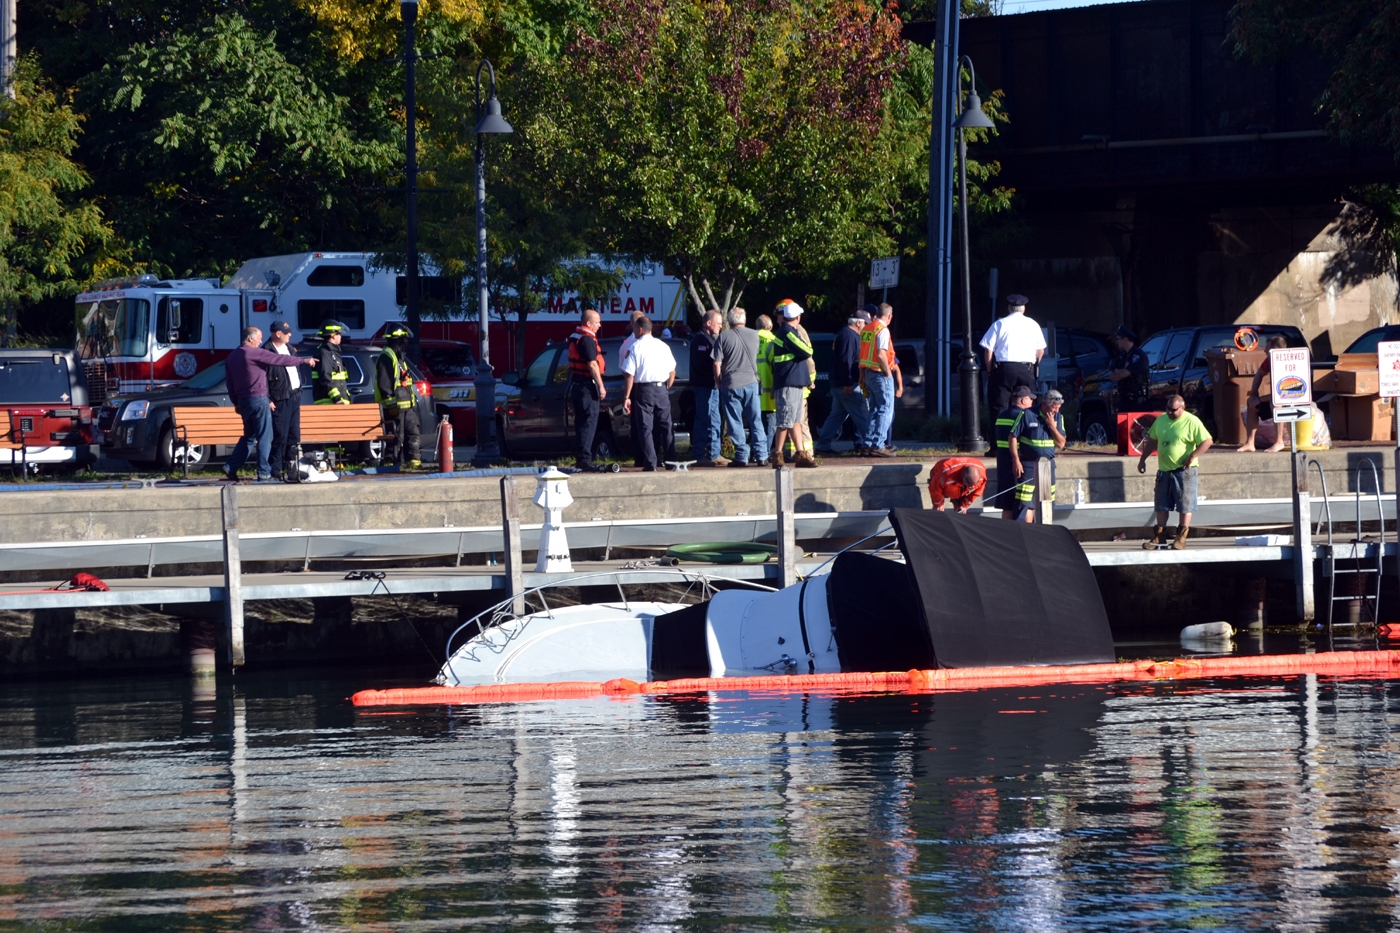 A boat was found submerged in the Erie Canal Tuesday morning.